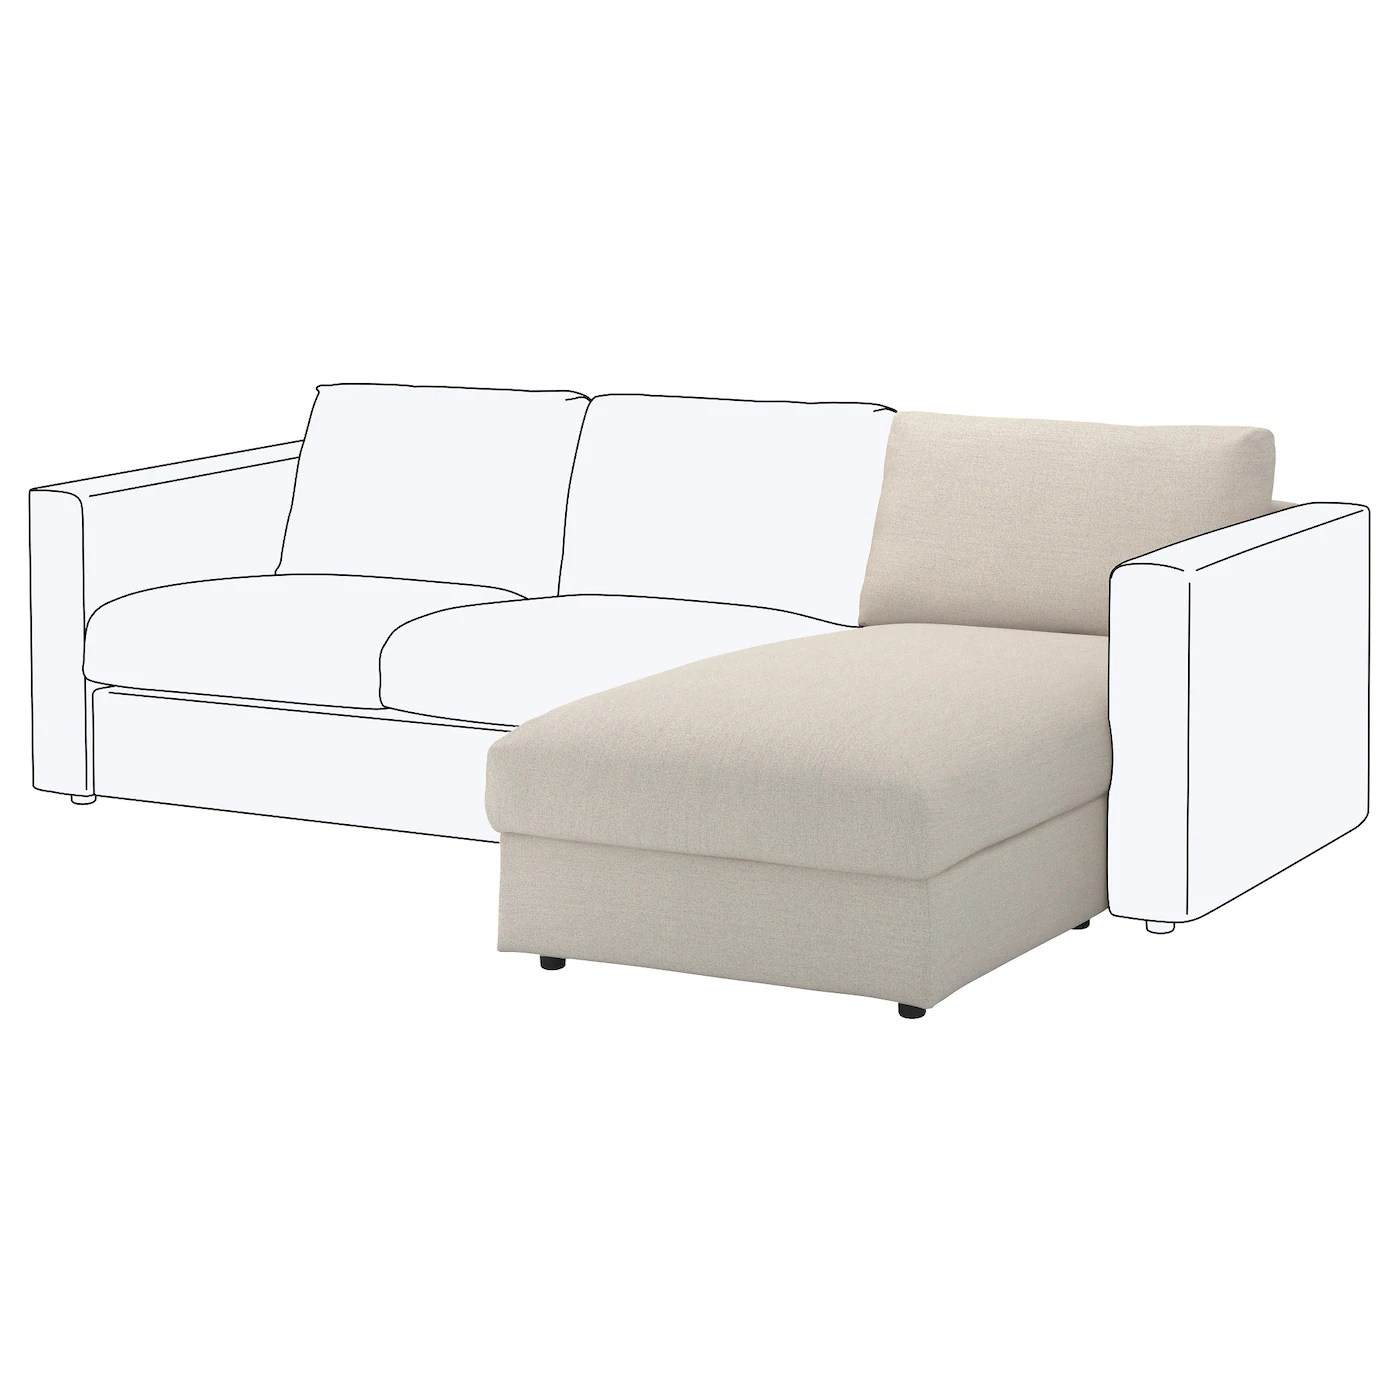 modular sofas ireland dfs sofa recliner leather and sectional ikea